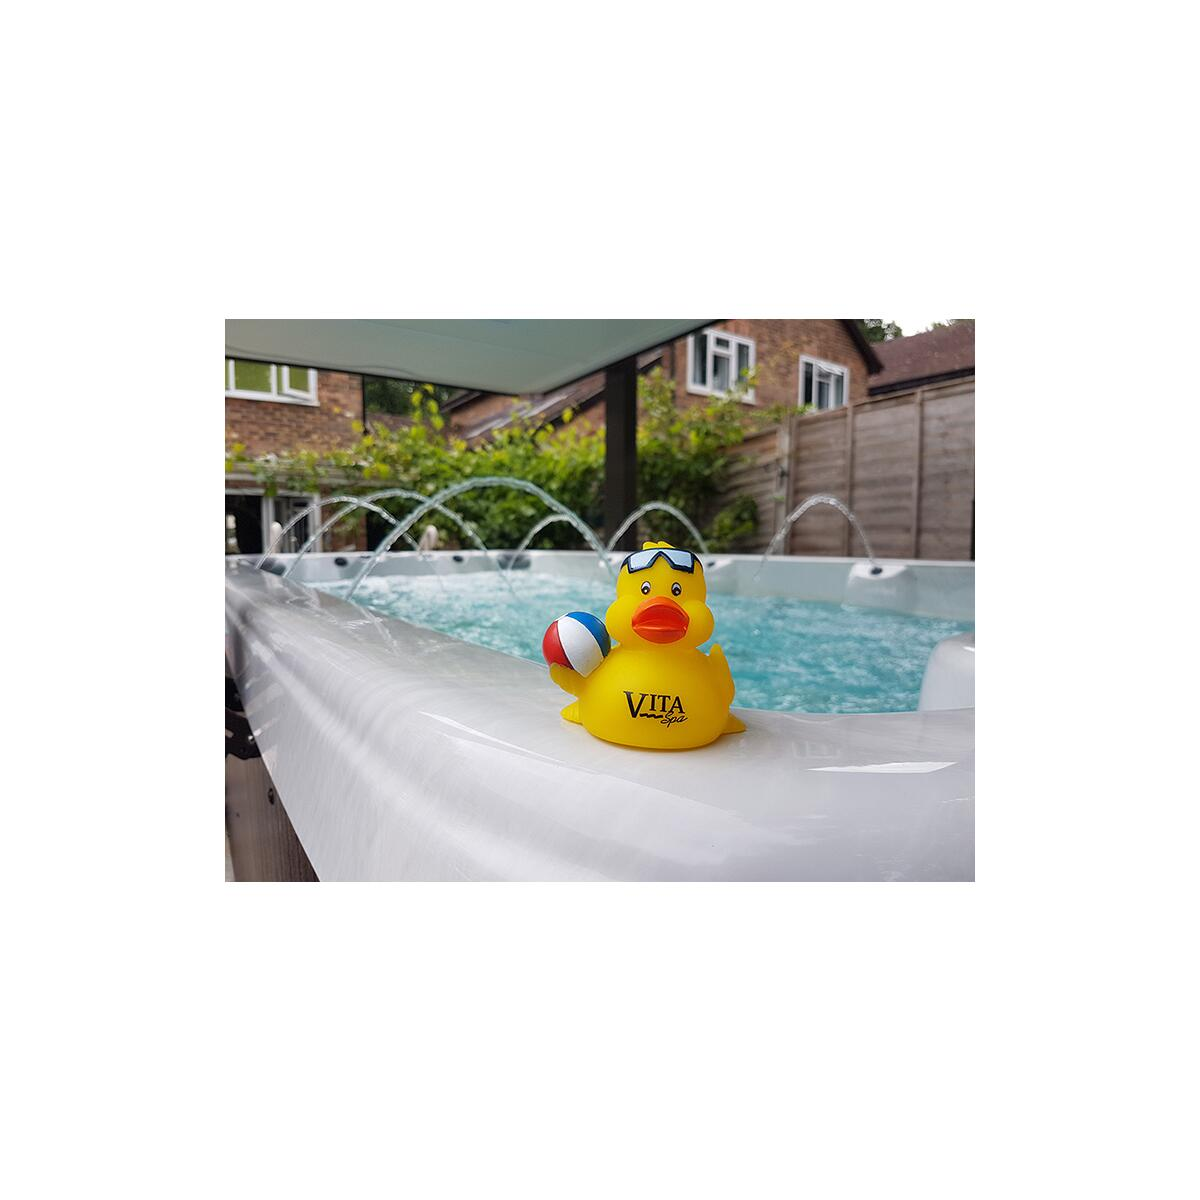 Hot Tubs Hampshire 5 star review on 12th July 2018